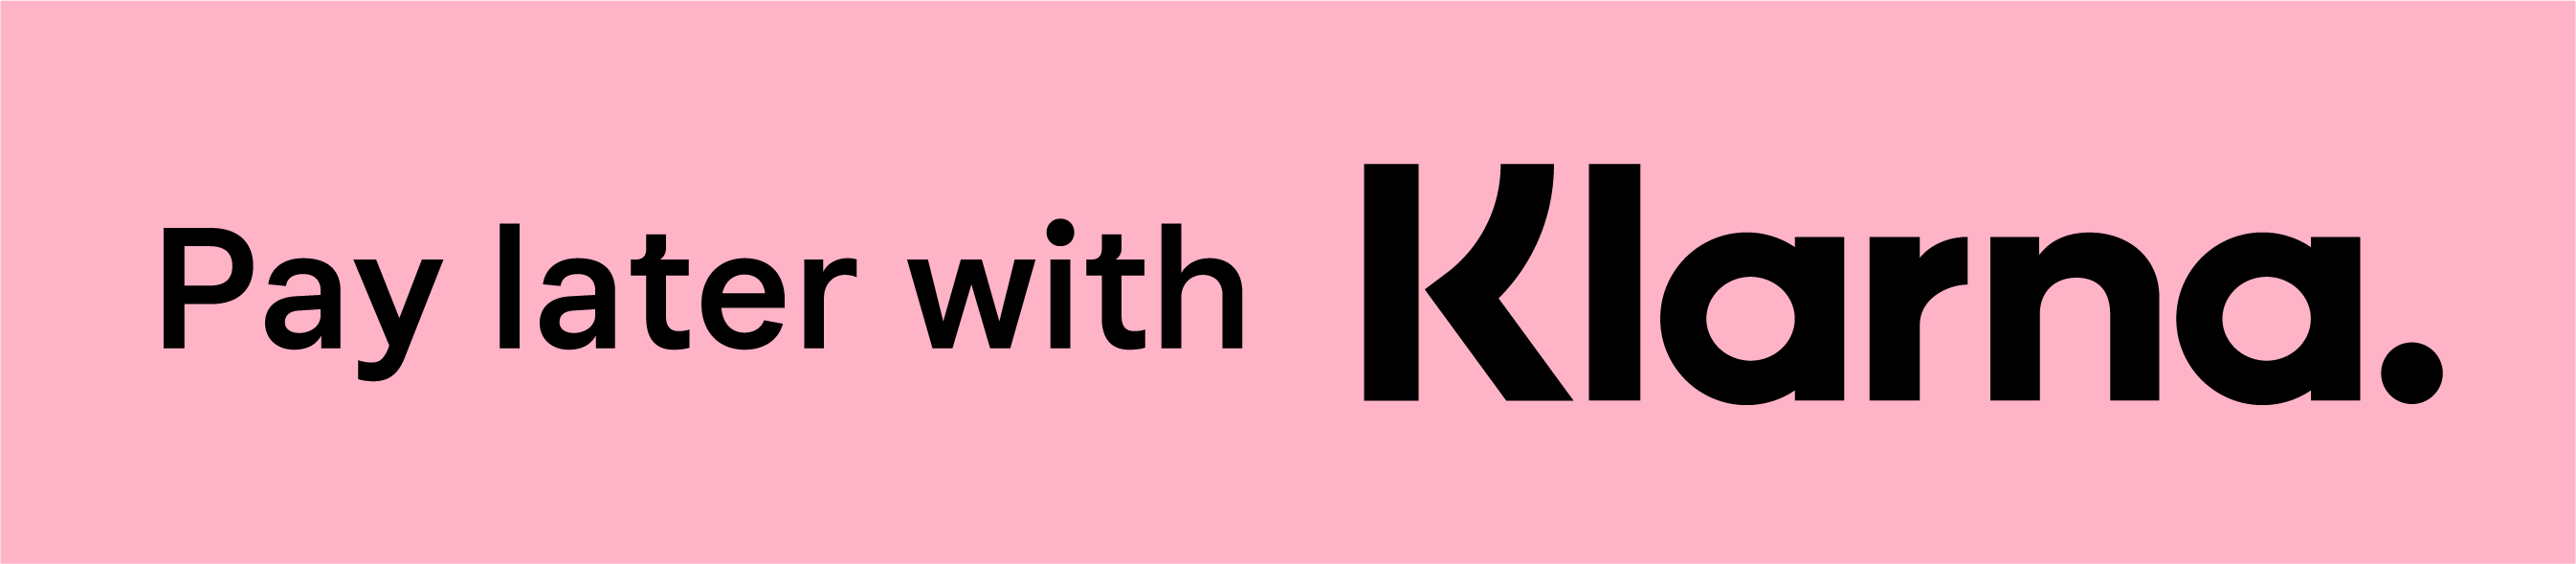 klarna-actionbadge-primary-pink.png